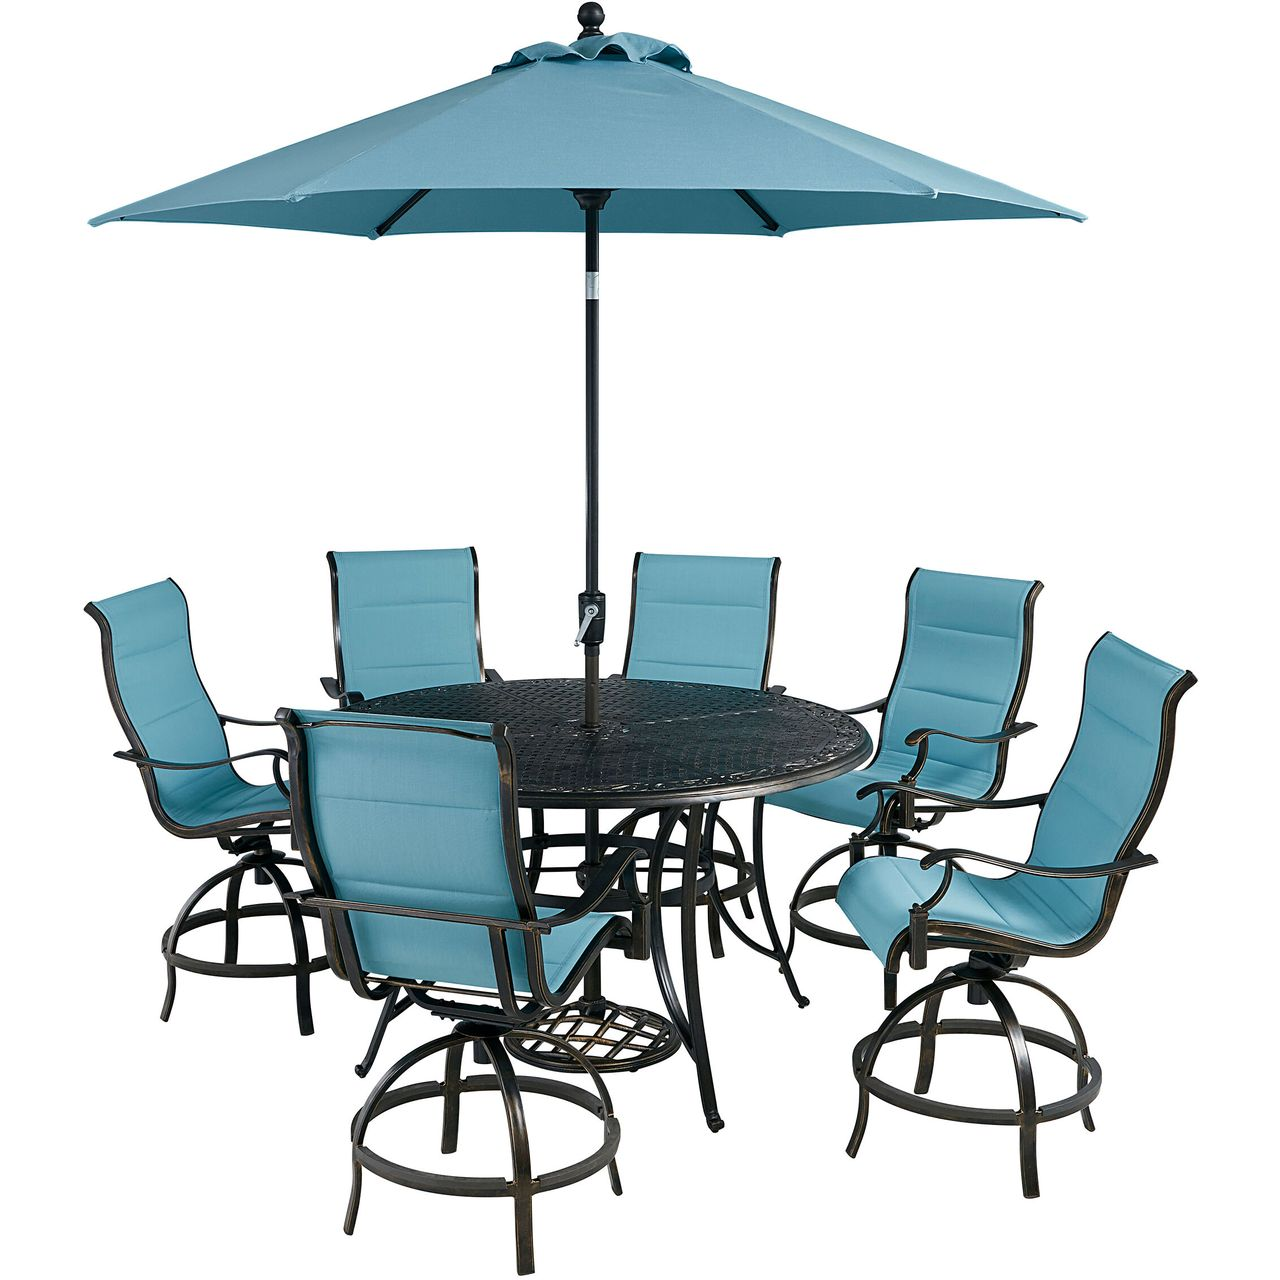 """Hanover Traditions 7-Pc 56"""" High-Dining Set With Blue Chairs/Umbrella"""